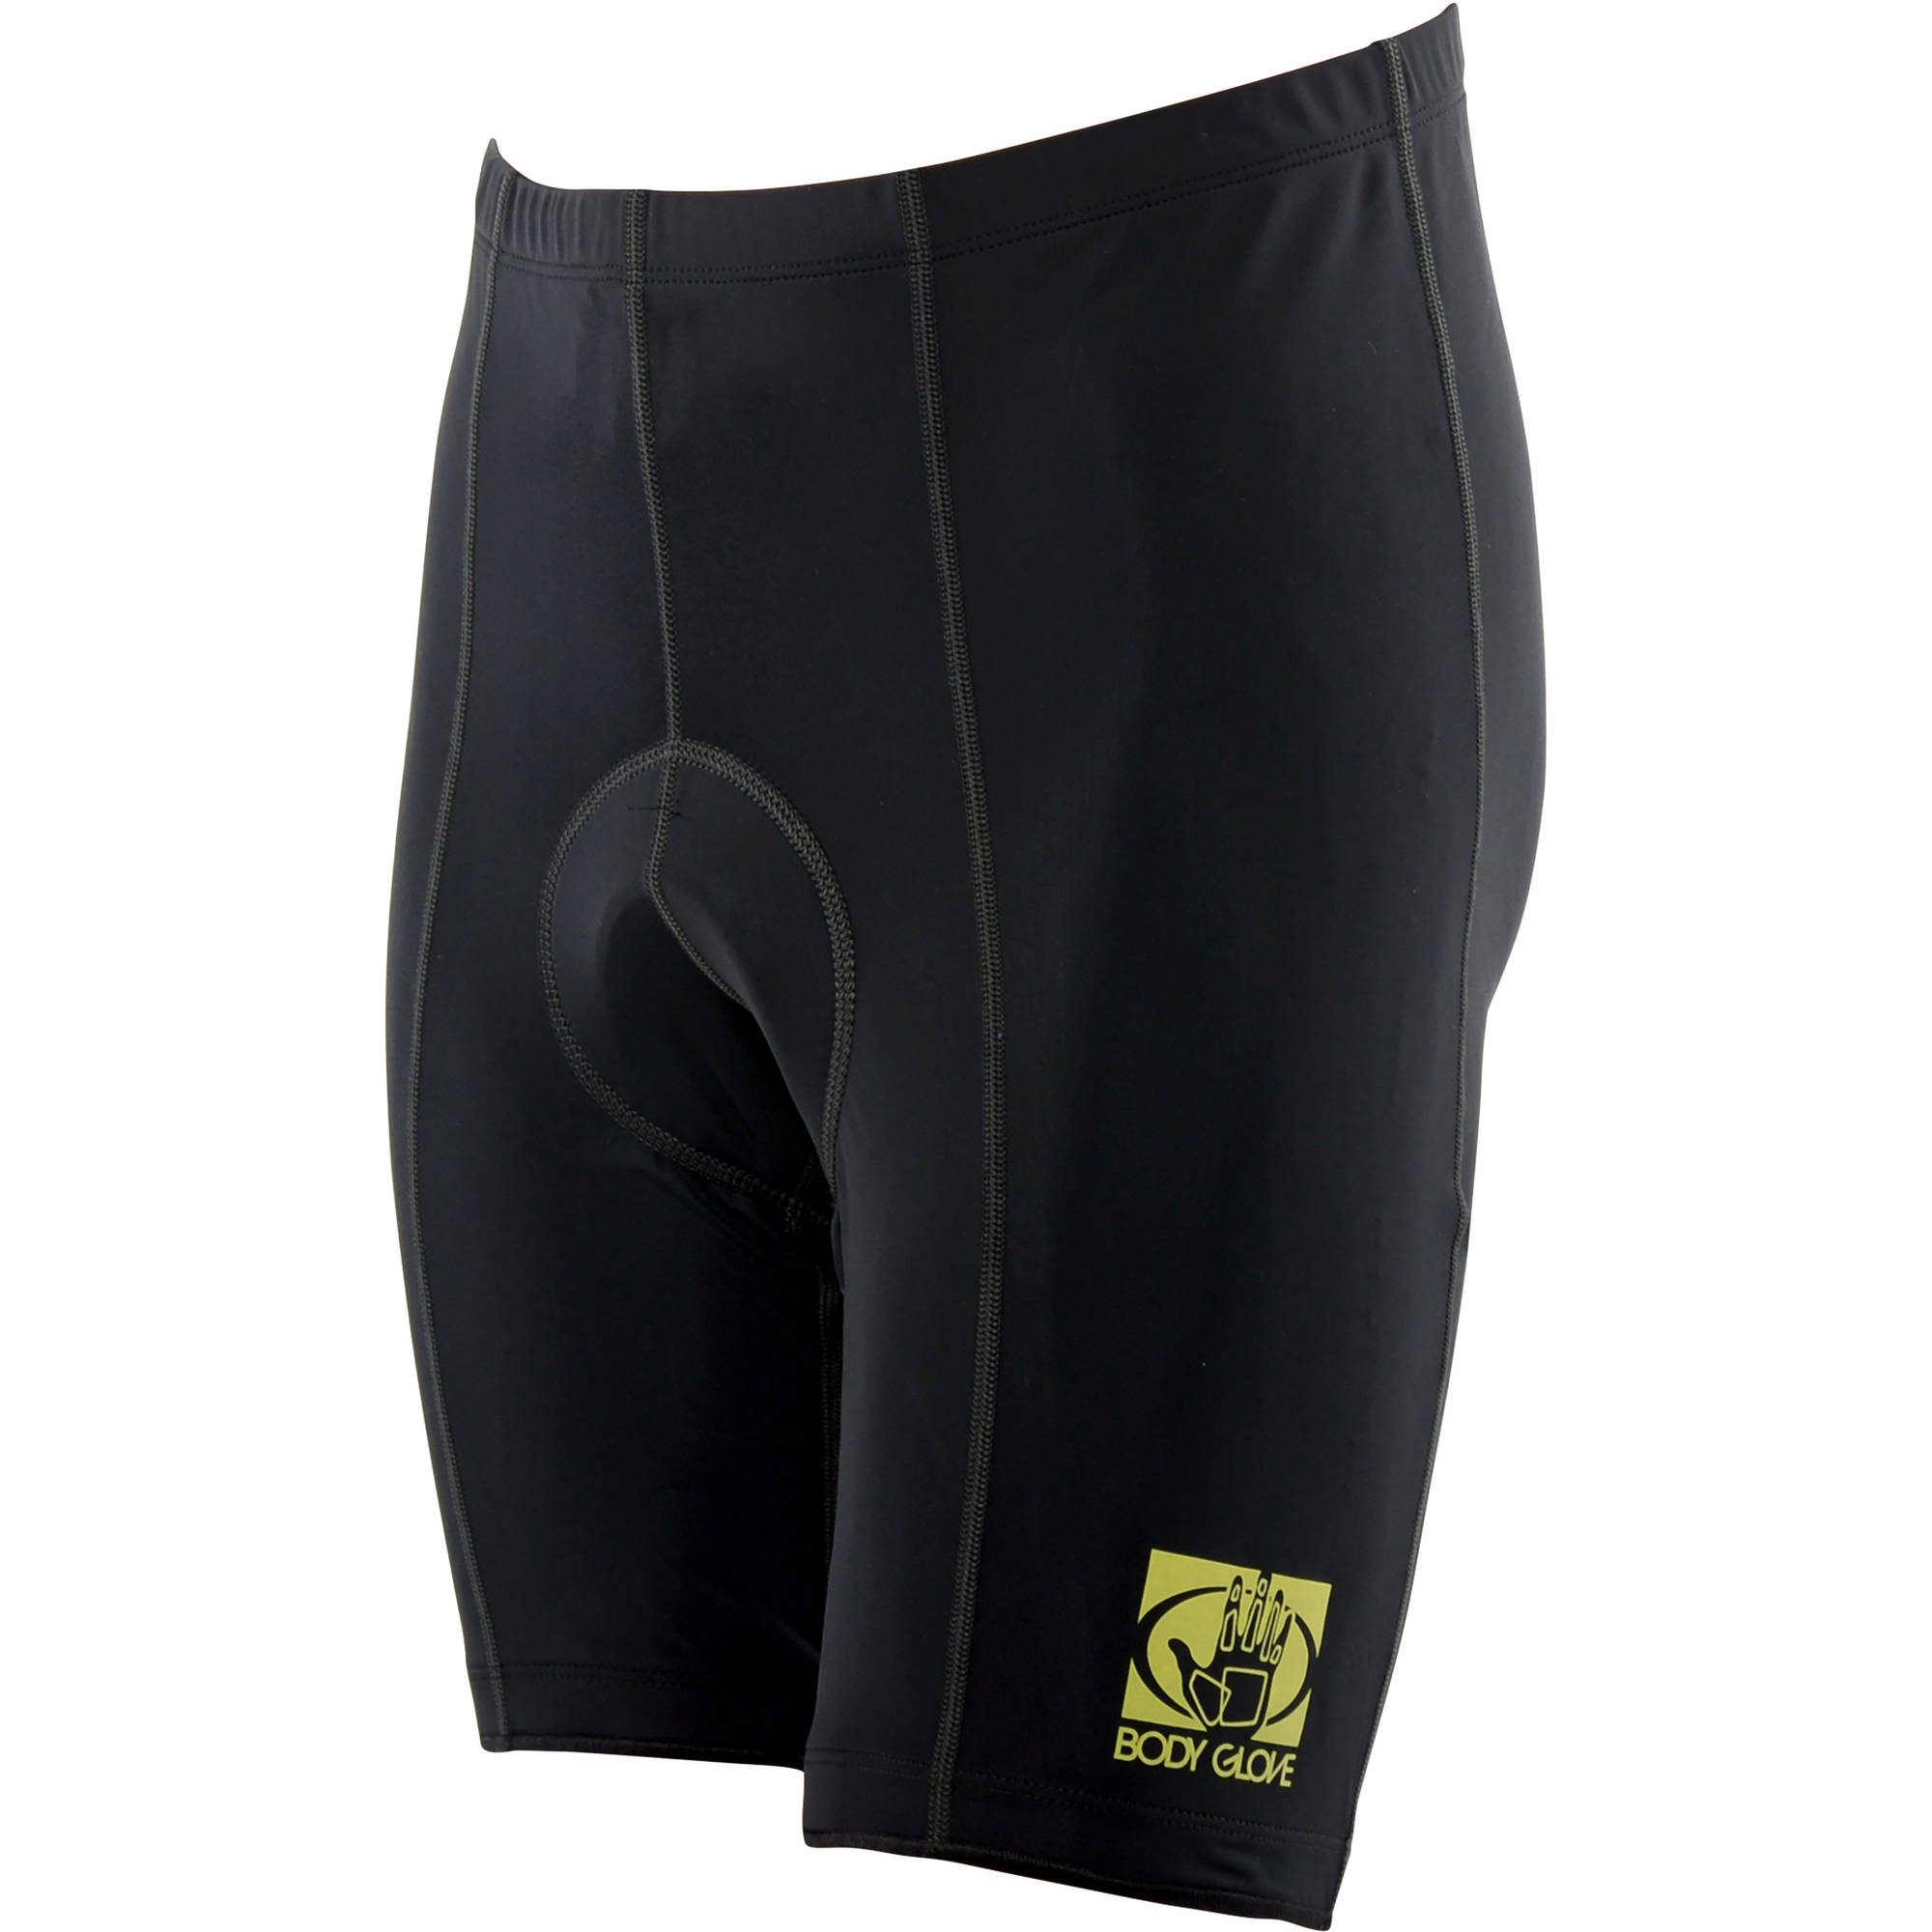 Pro Comfort 8-panel Cycling Short by Cycle Force Group